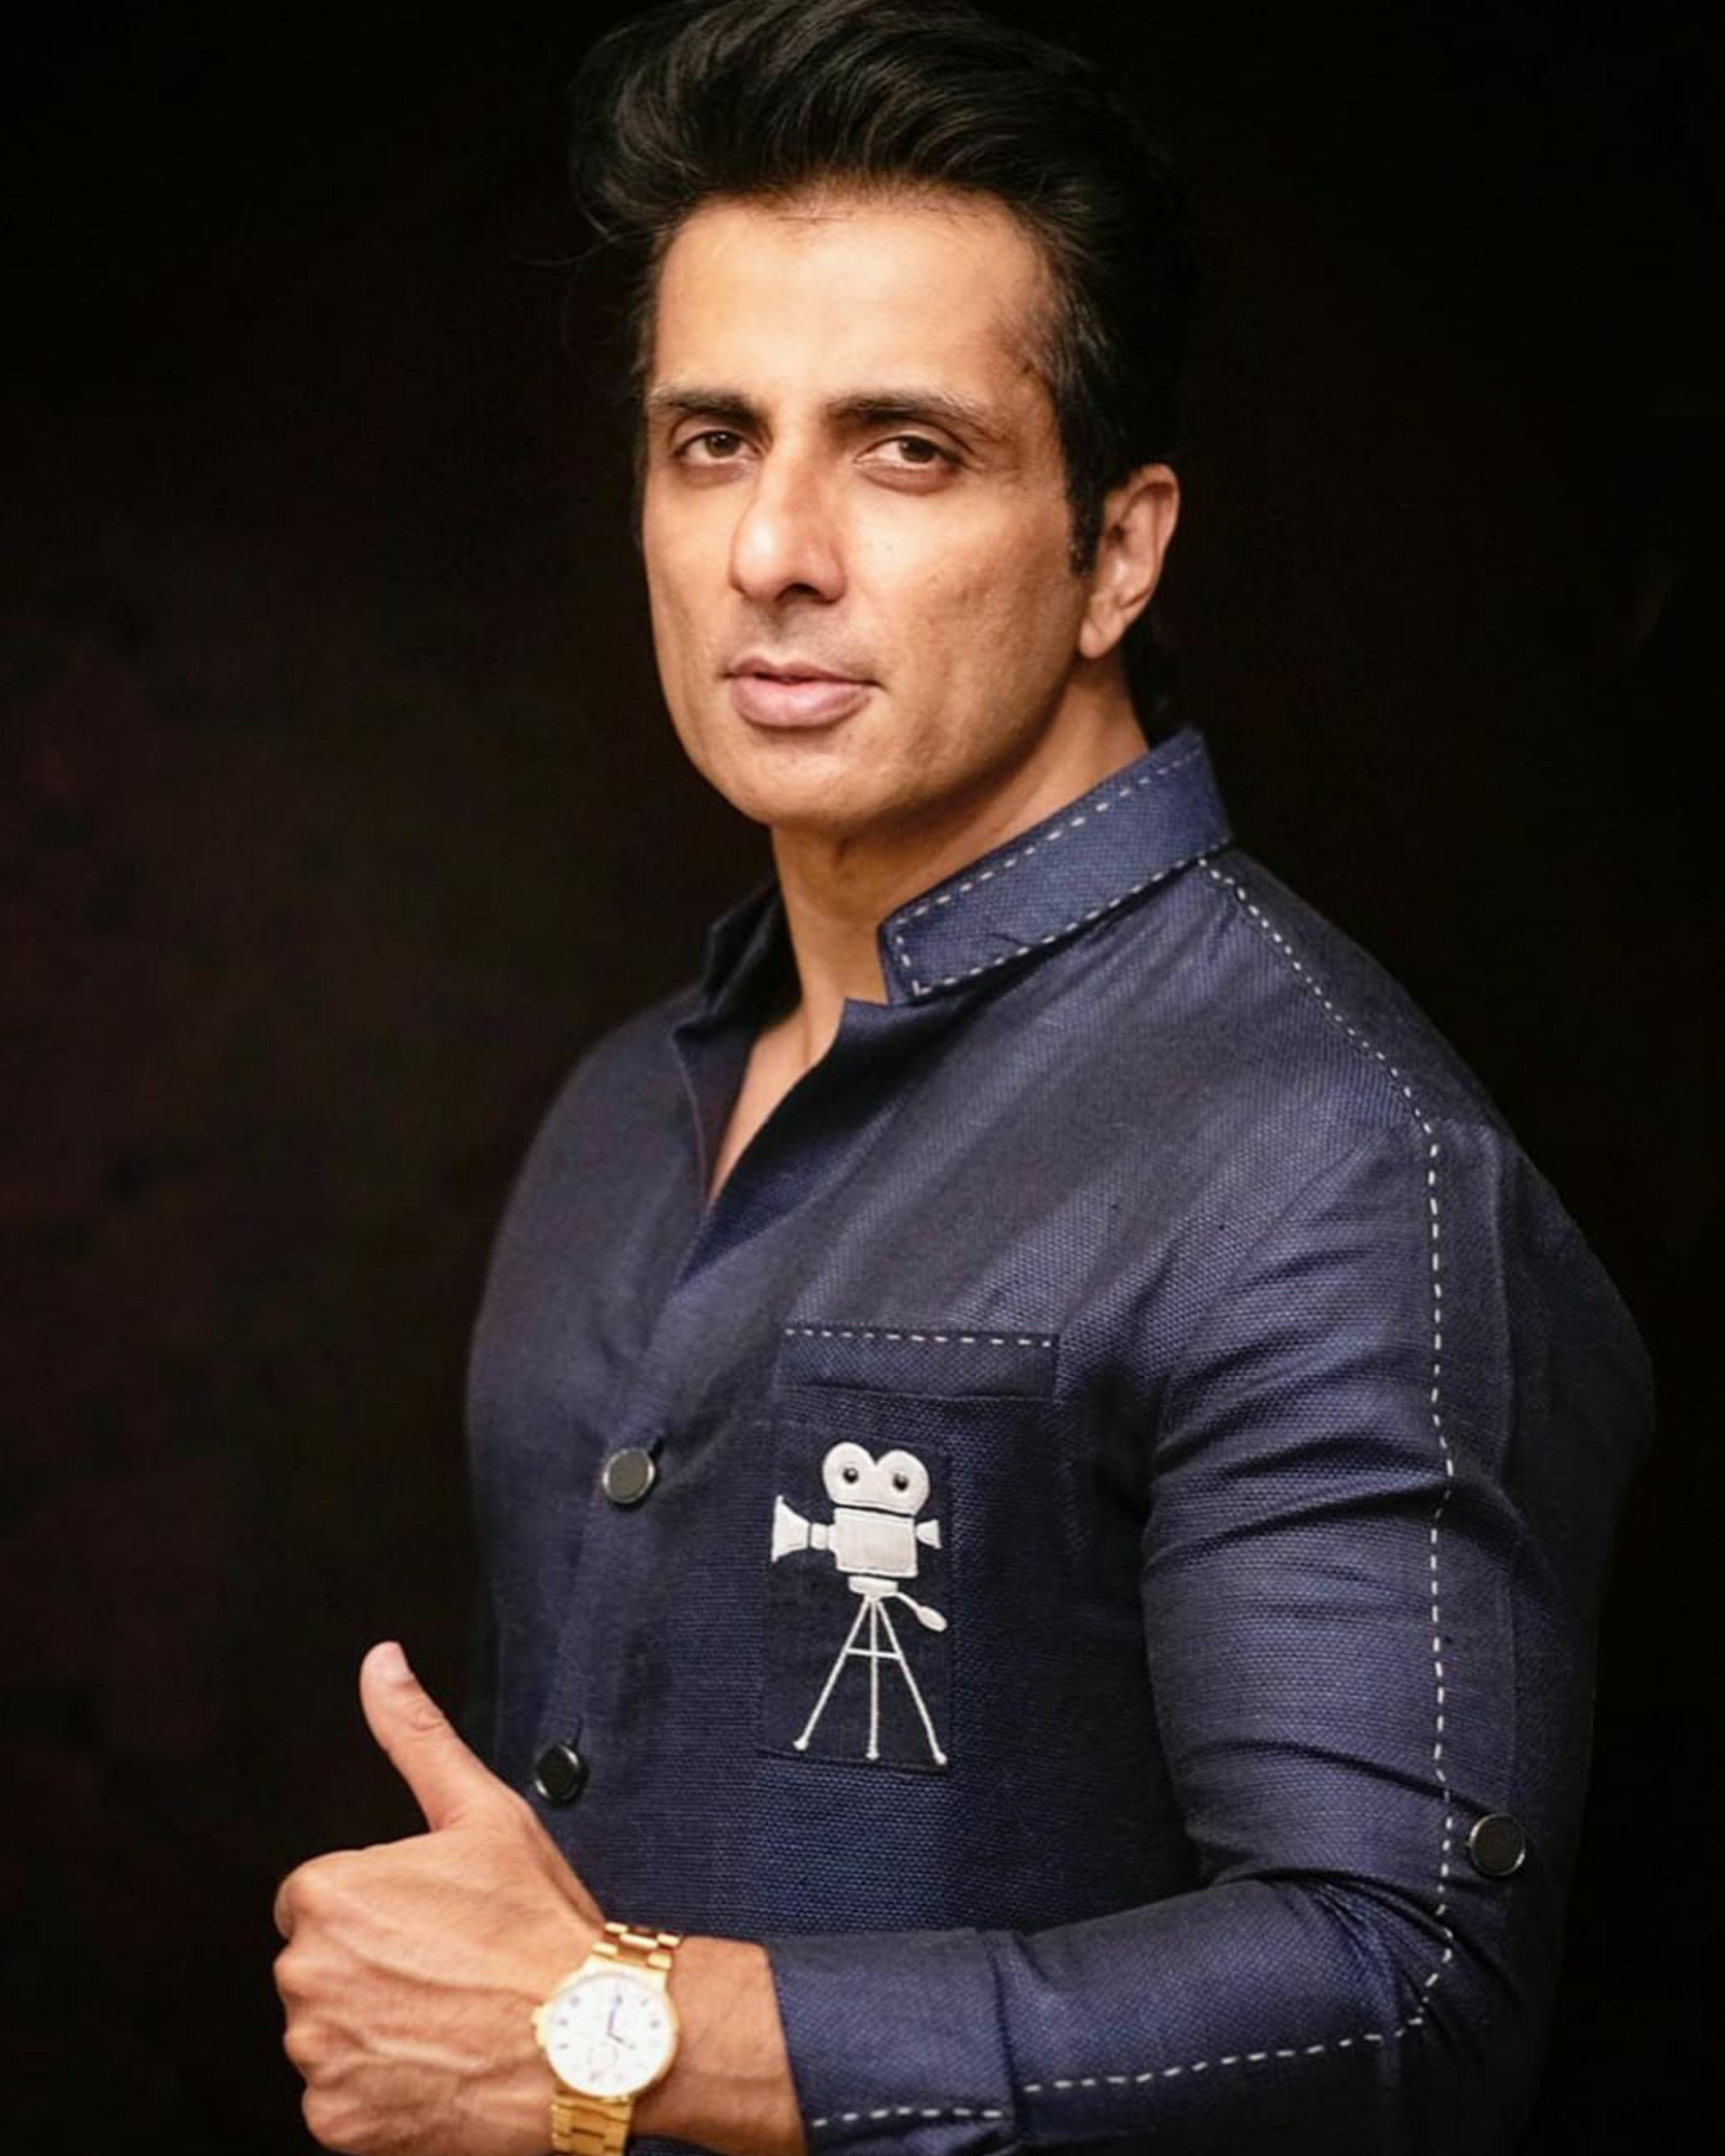 MAKING A DIFFERENCE: Sonu Sood